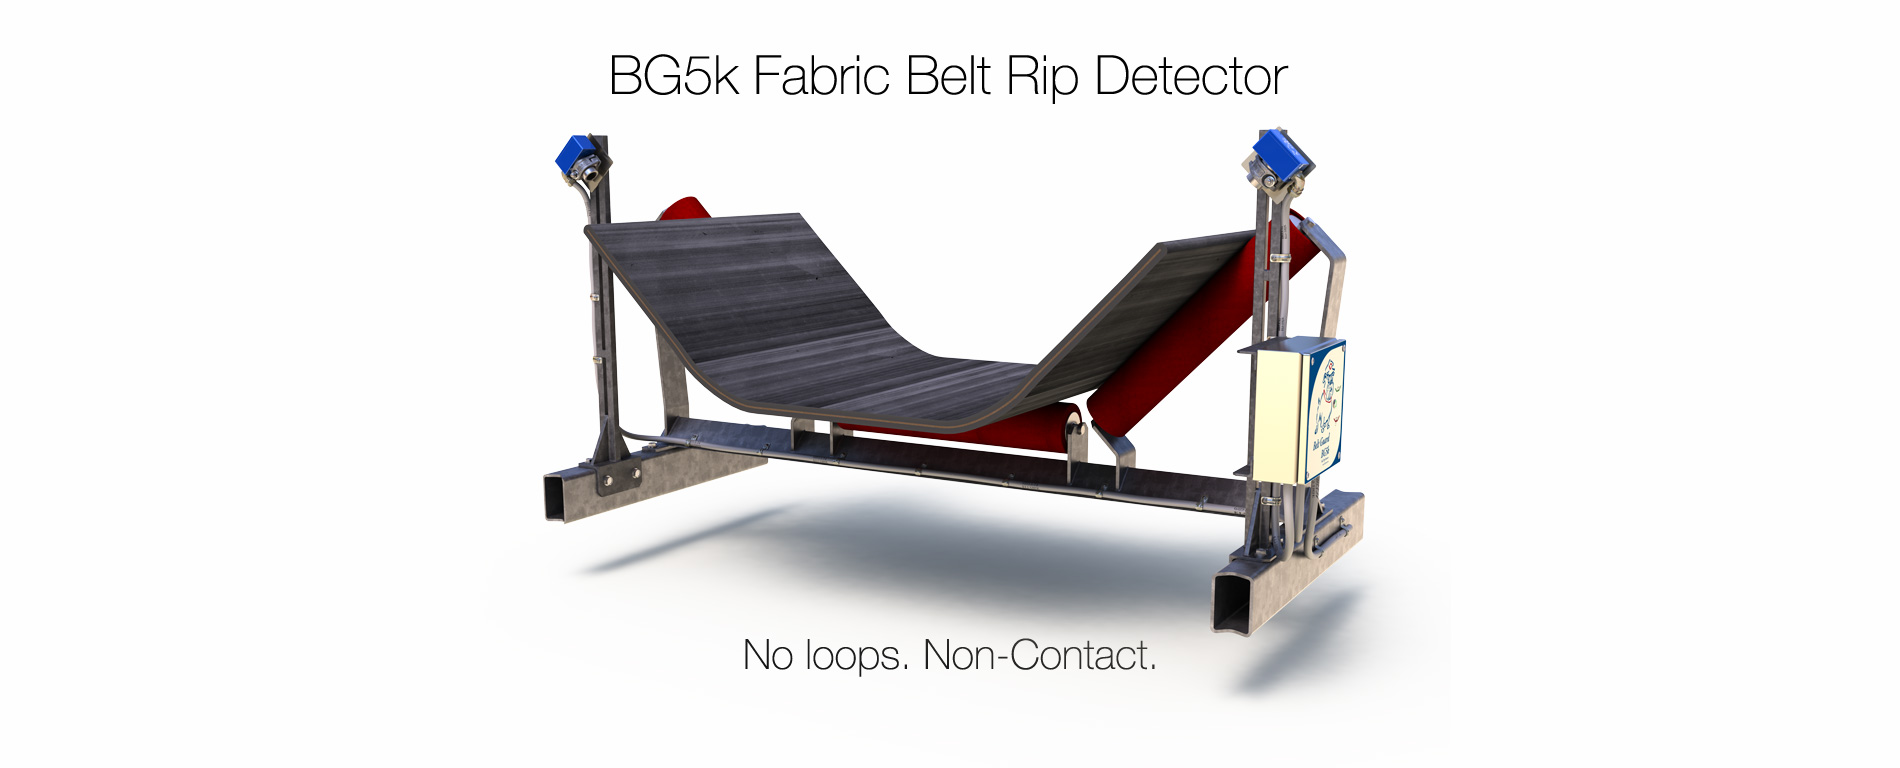 BG5k Fabric Belt Rip Detector